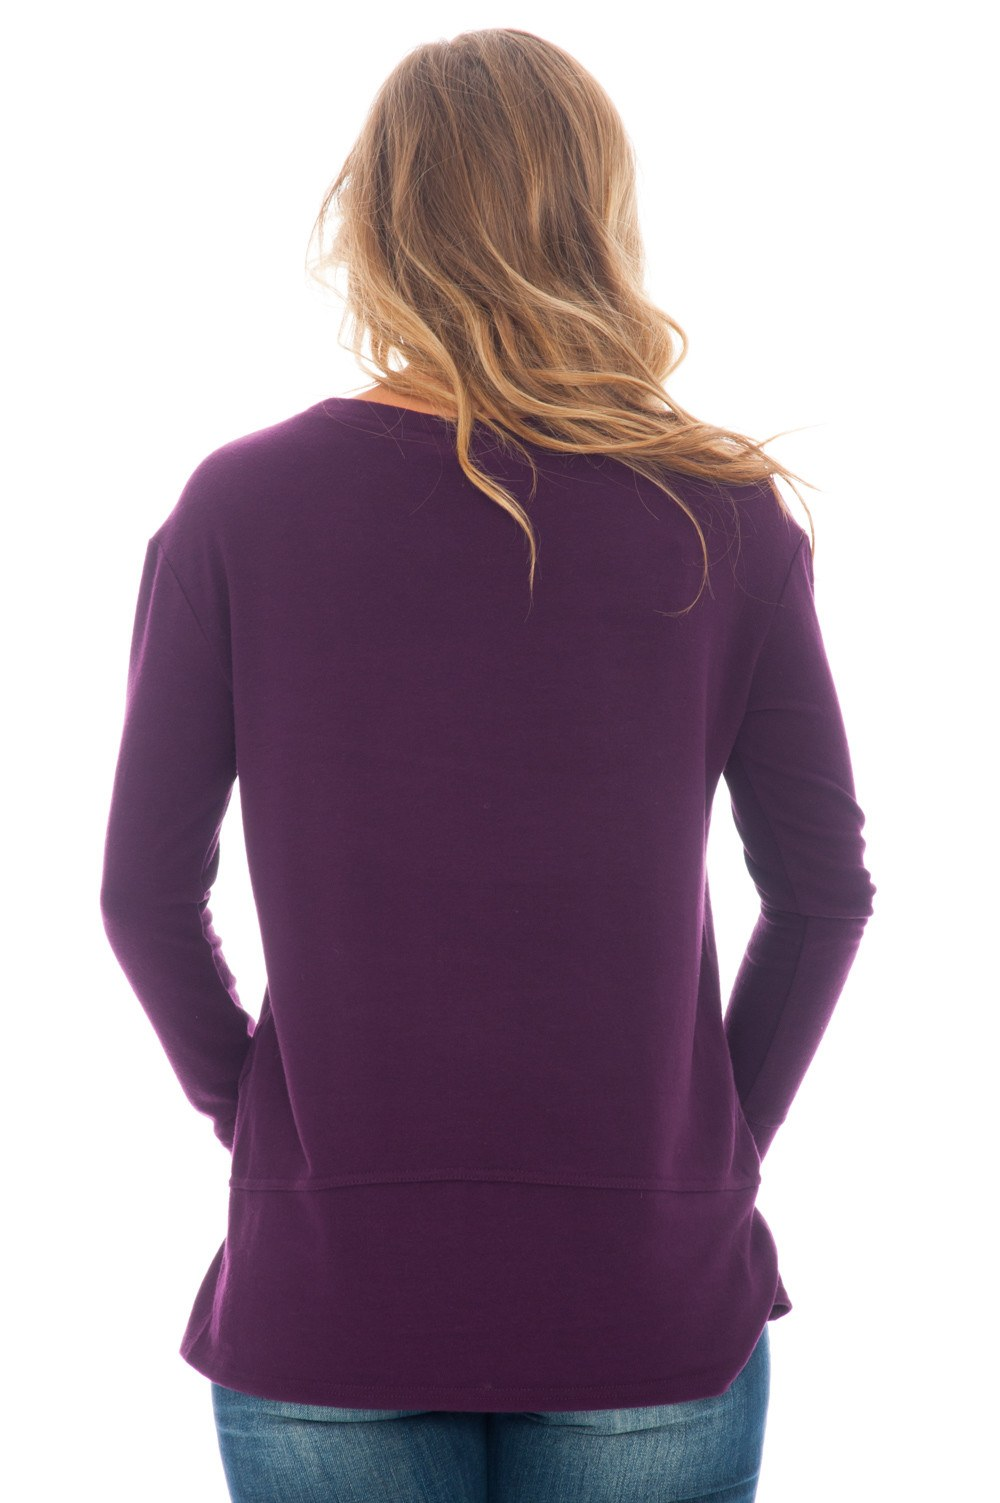 Top - Begley Purple Sleeve by BB Dakota - 3